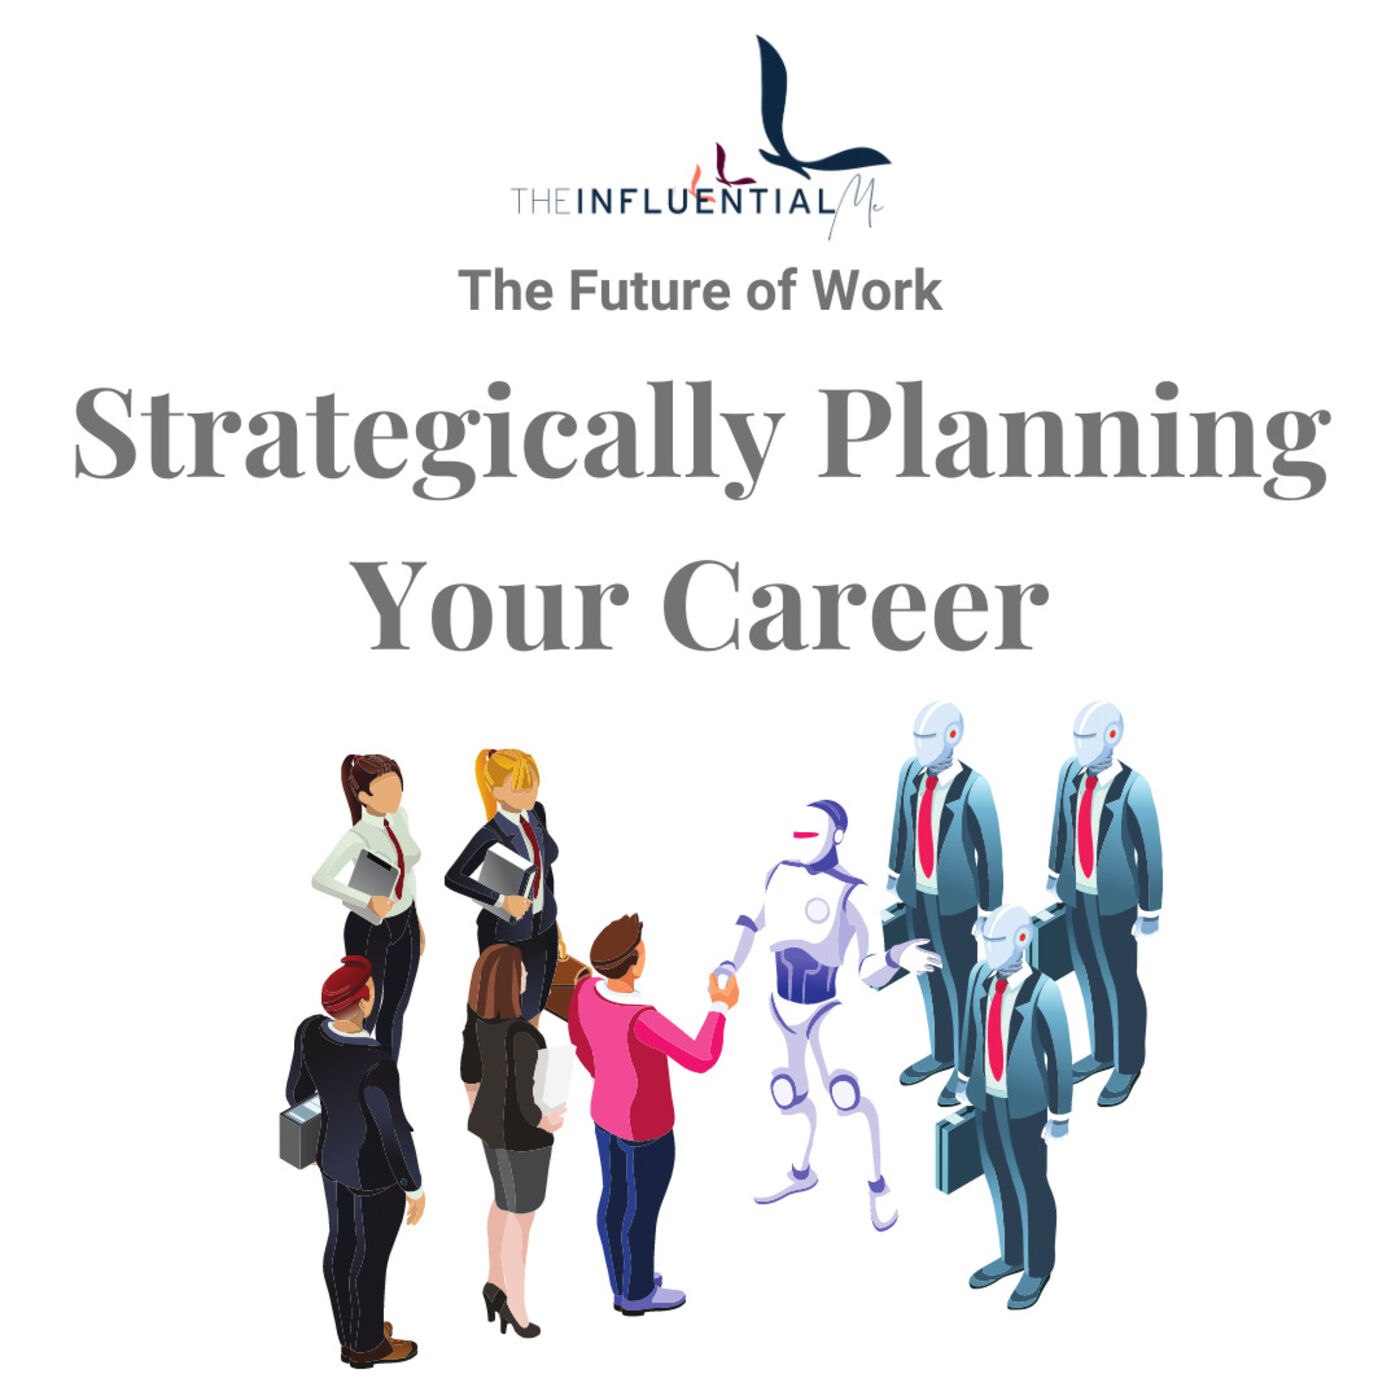 The Future of Work: Strategically Planning Your Career